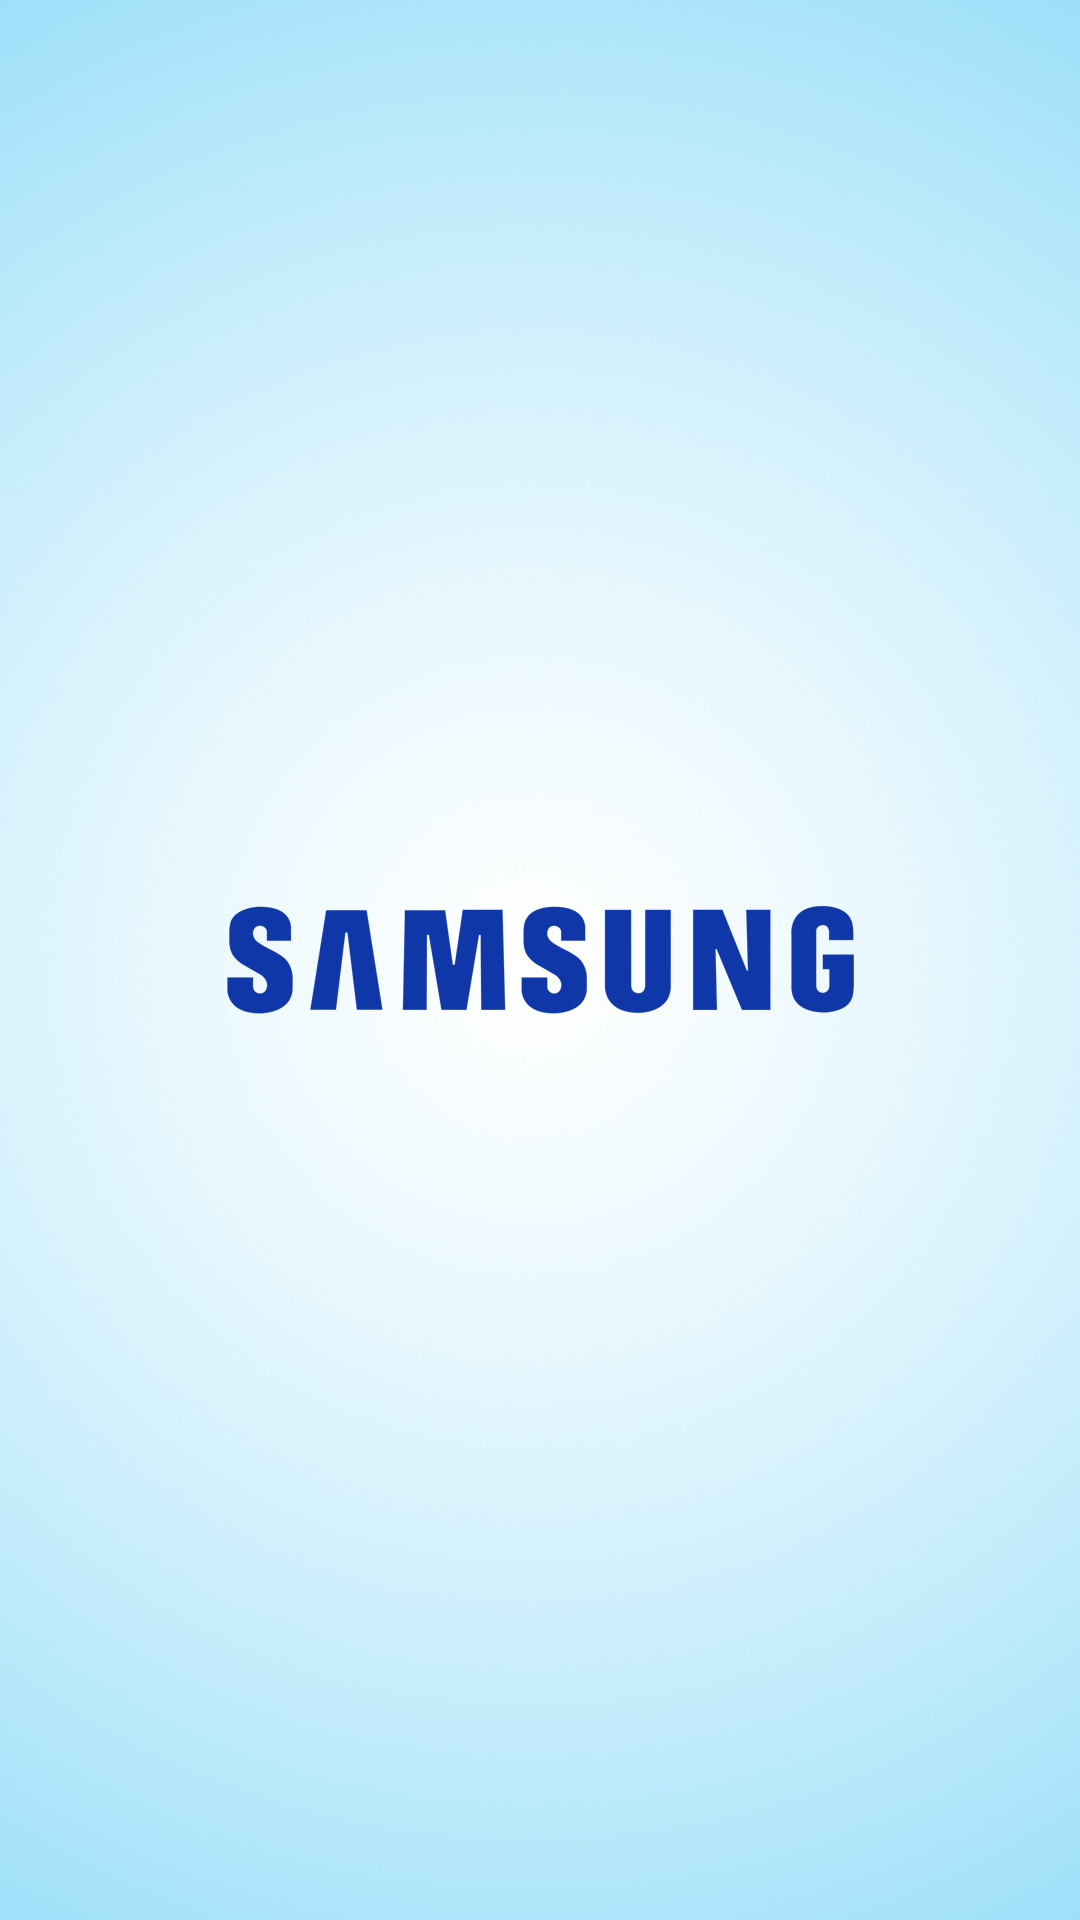 Samsung Logo Download Mobile Phone Full Hd Wallpaper